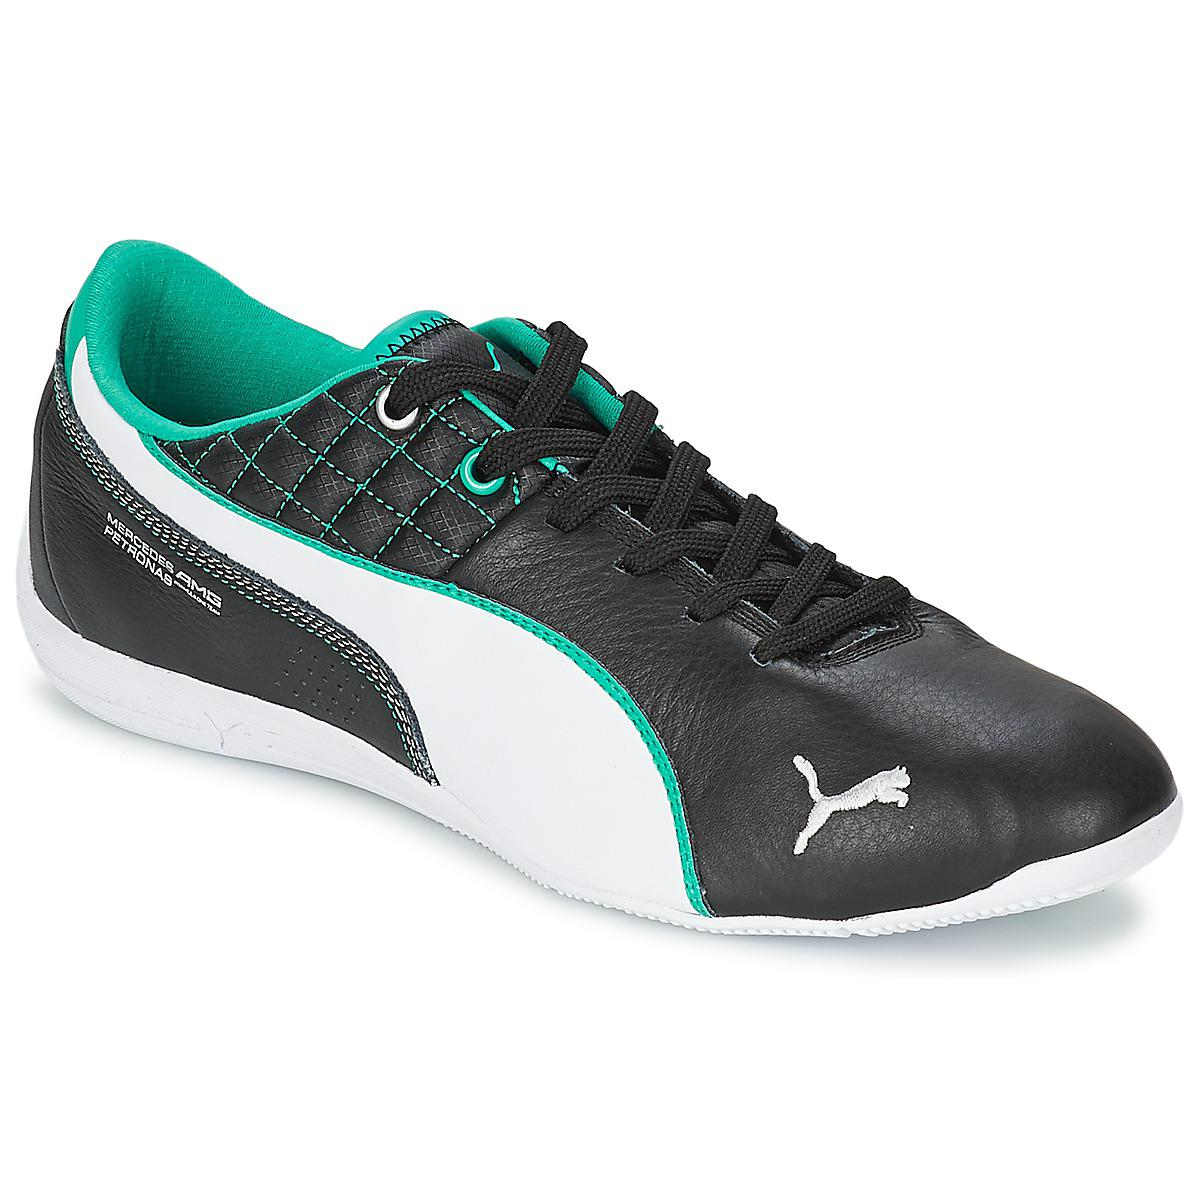 PUMA. Mamgp Drift Cat 6 Leather Men's Shoes (trainers) In Black